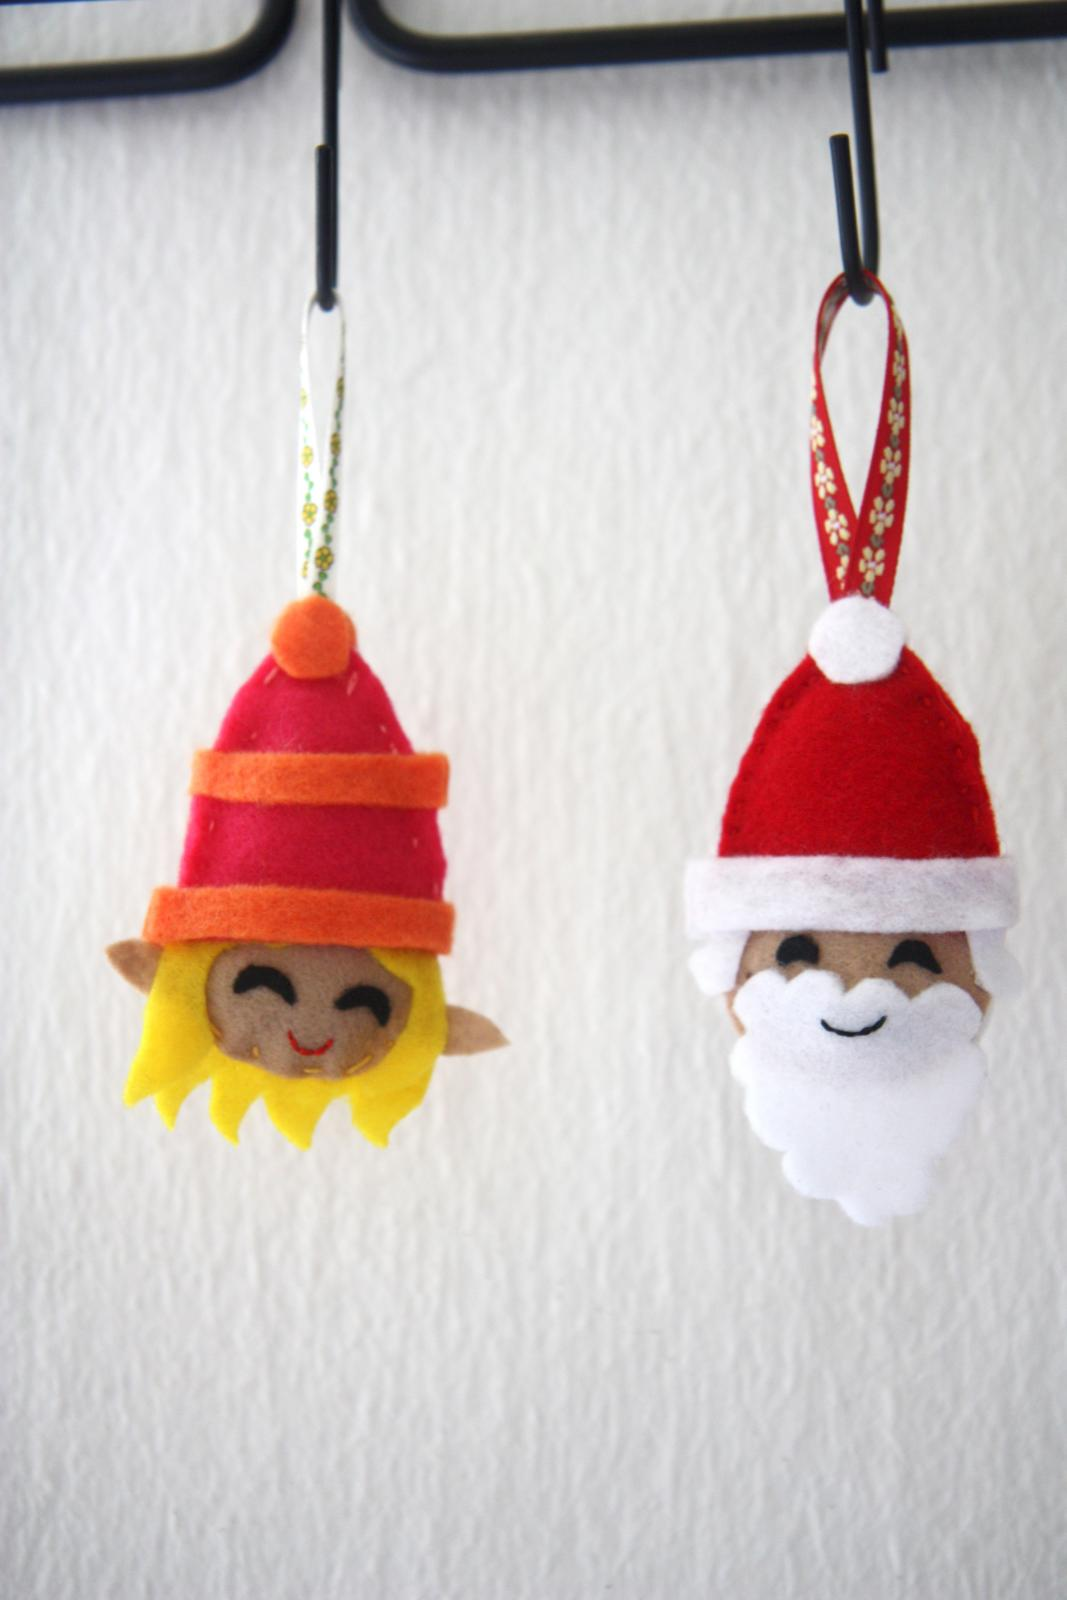 sewing felt xmas tree decoration